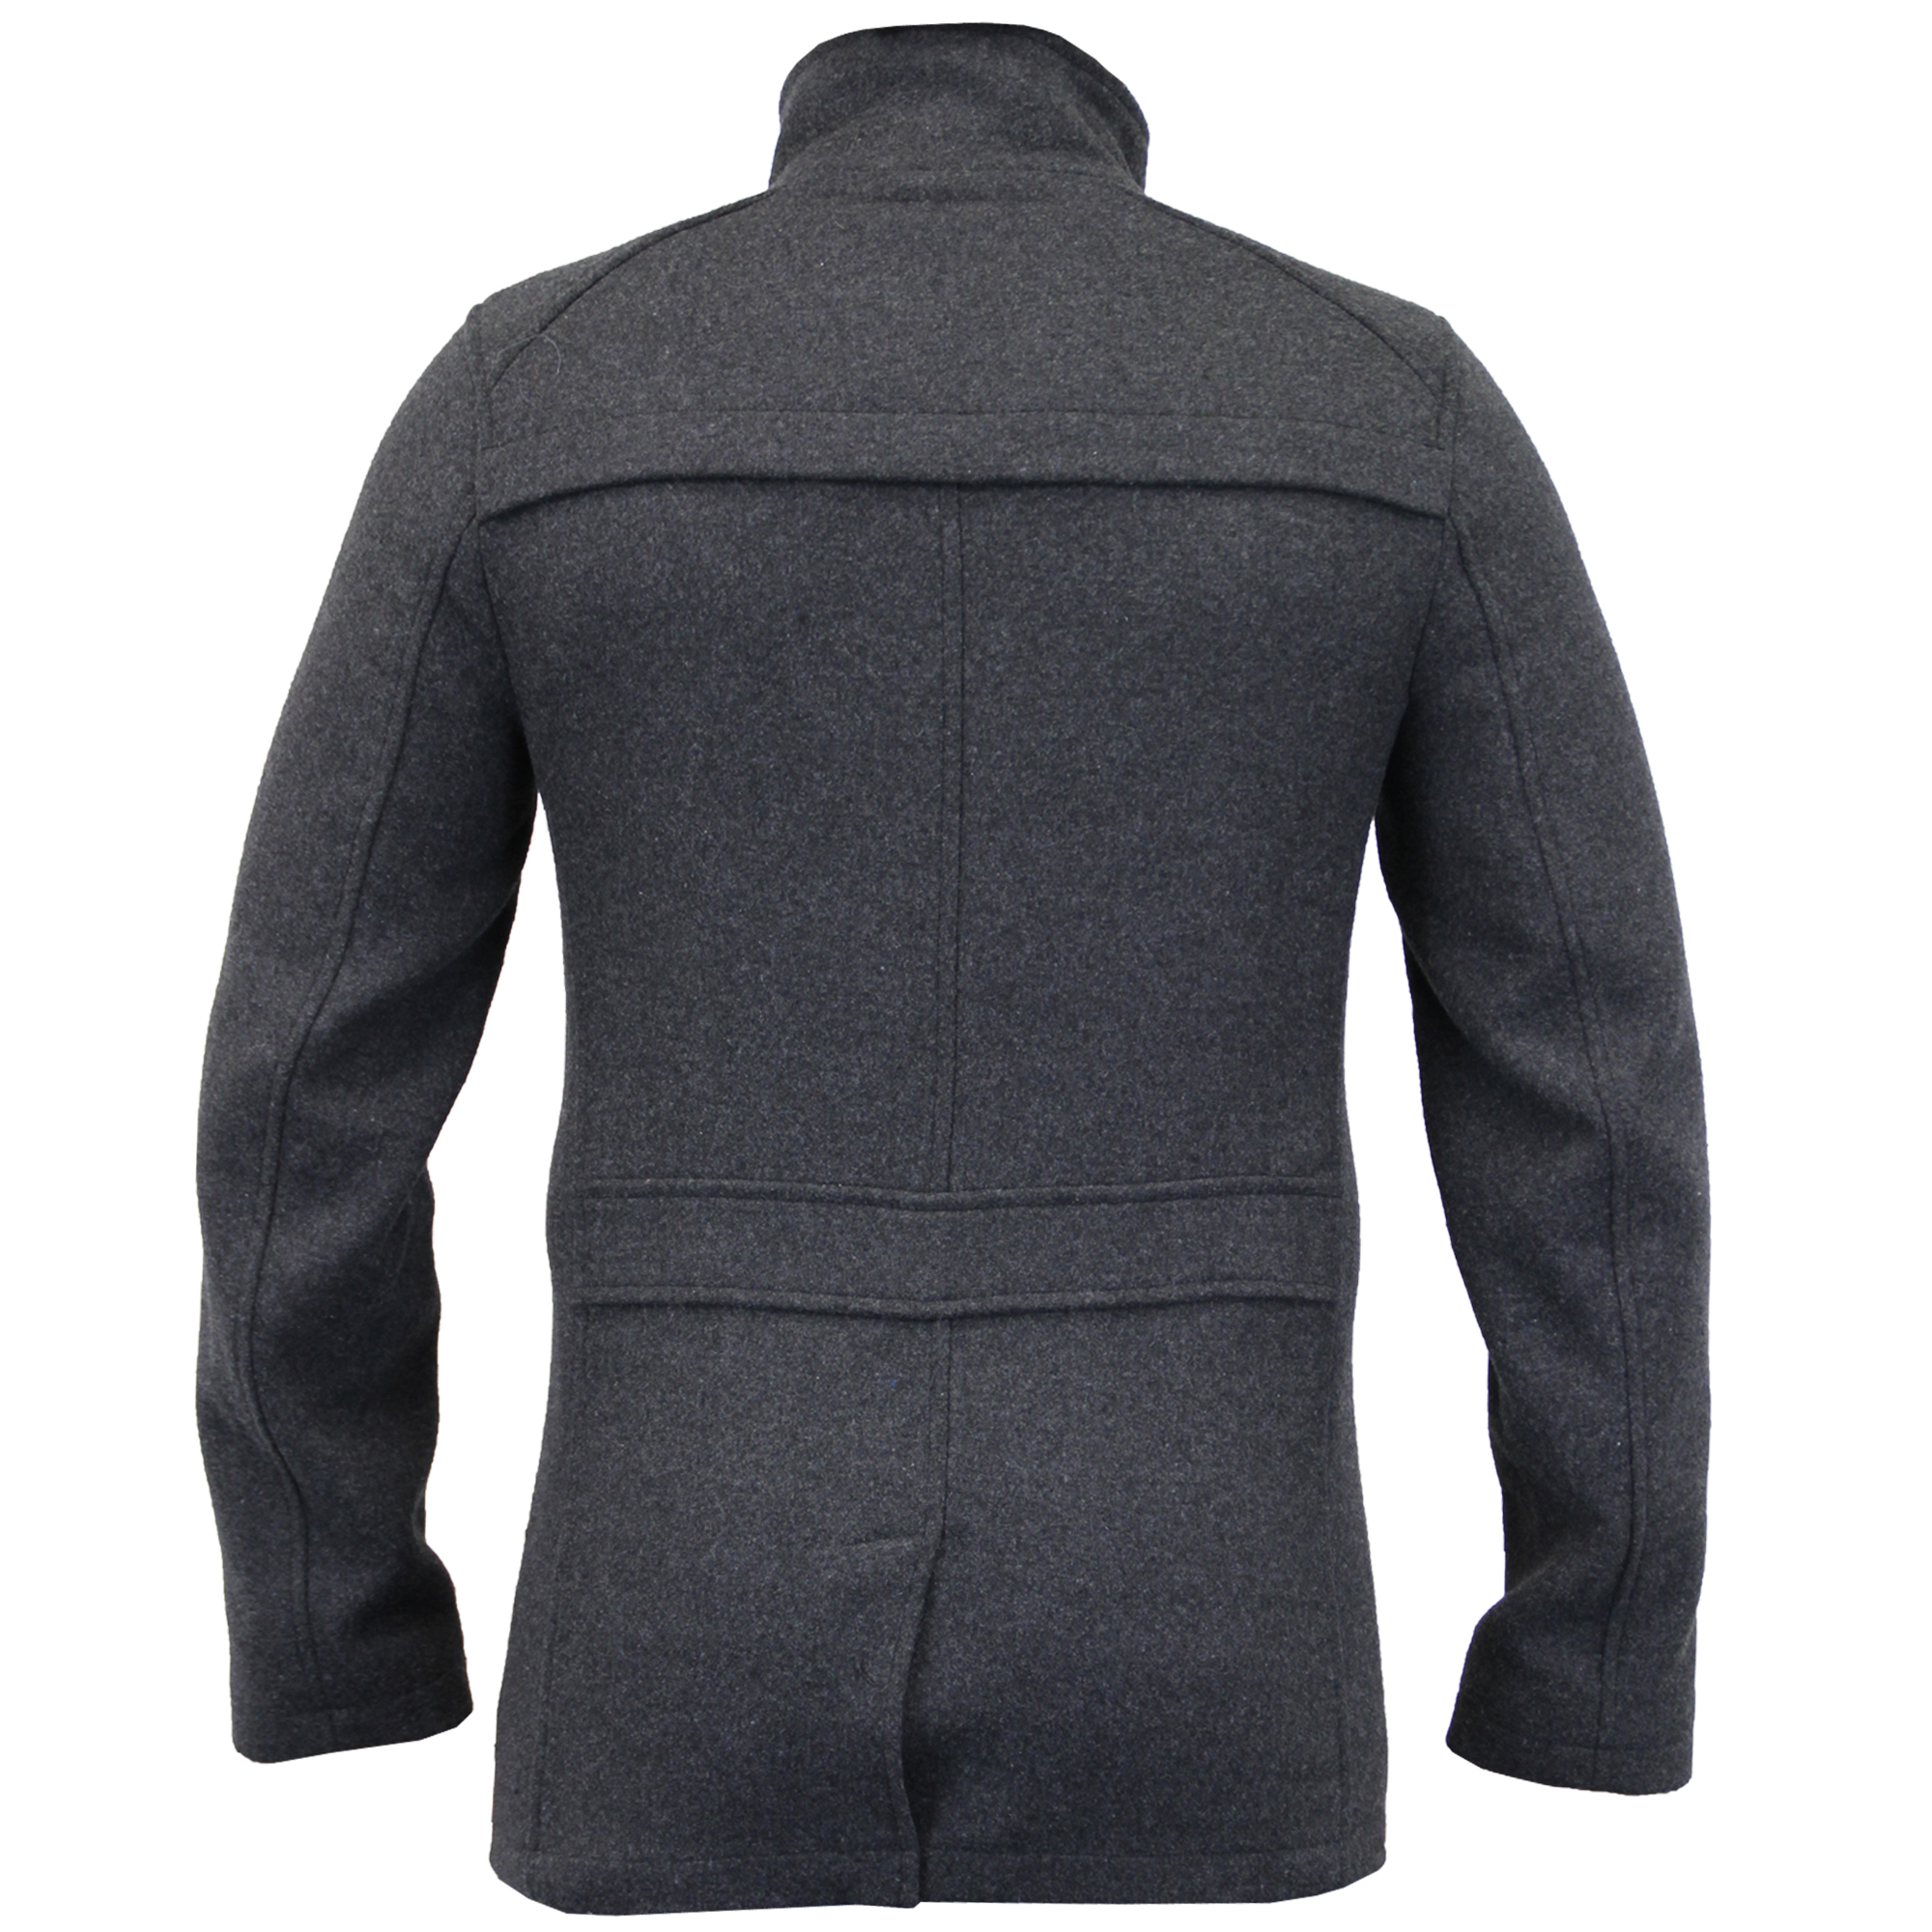 Mens-Wool-Mix-Jacket-Threadbare-Coat-Double-Breasted-Duffle-Lined-Winter-New thumbnail 3